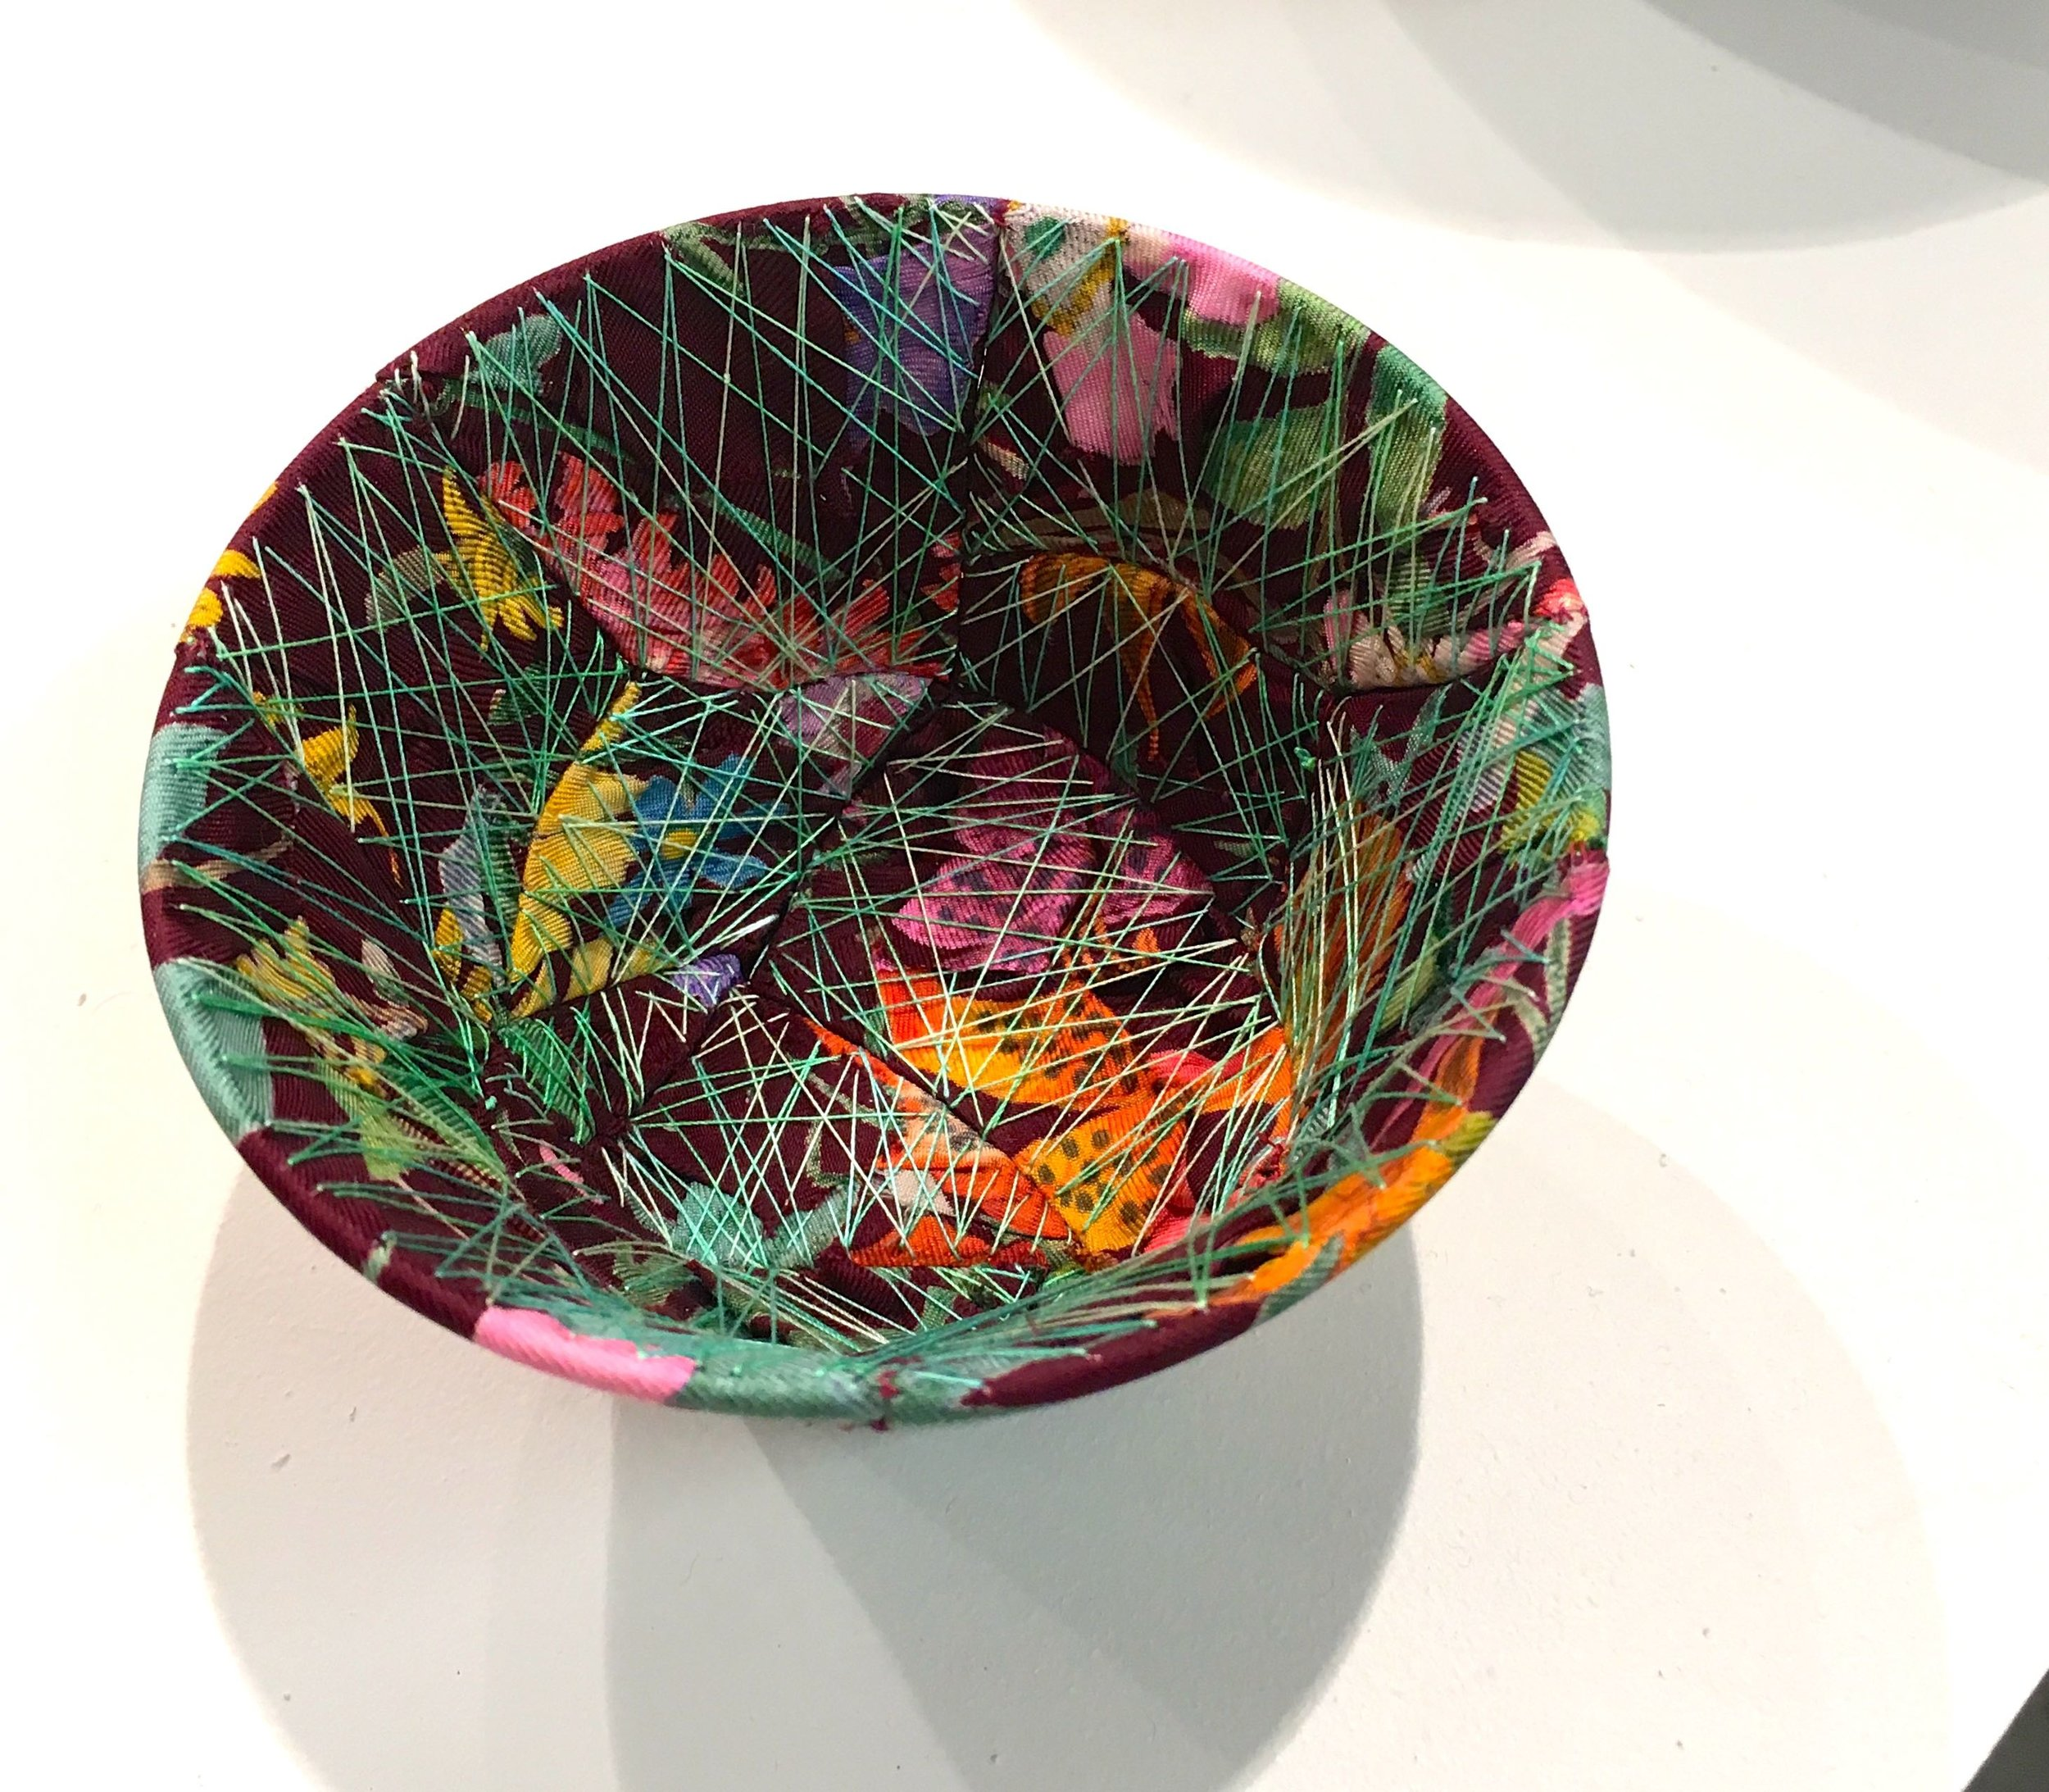 An exquisitely created and decorative bowl